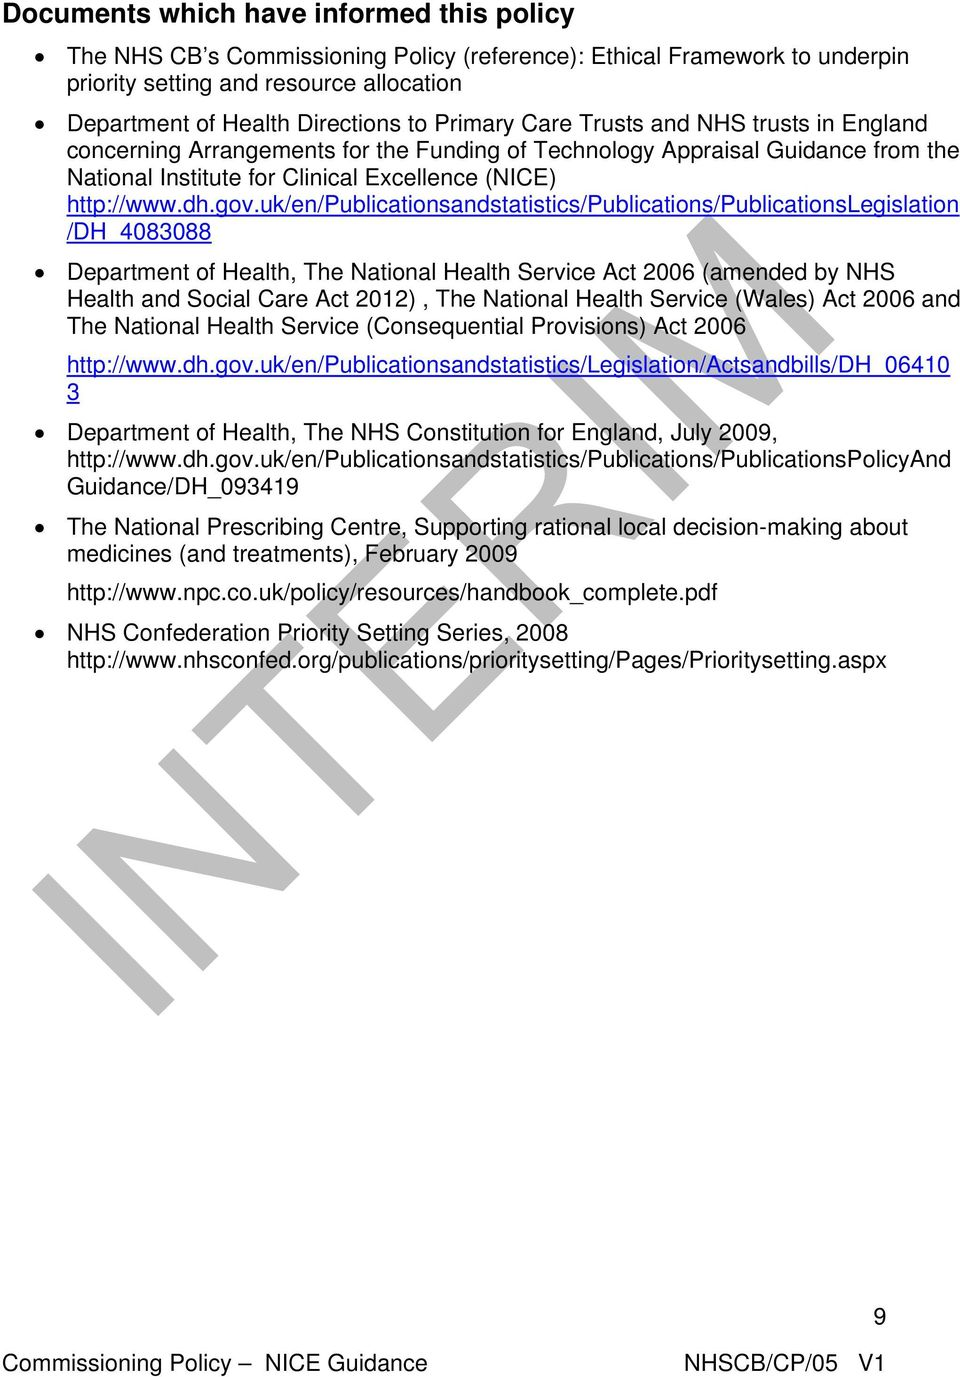 uk/en/publicationsandstatistics/publications/publicationslegislation /DH_4083088 Department of Health, The National Health Service Act 2006 (amended by NHS Health and Social Care Act 2012), The